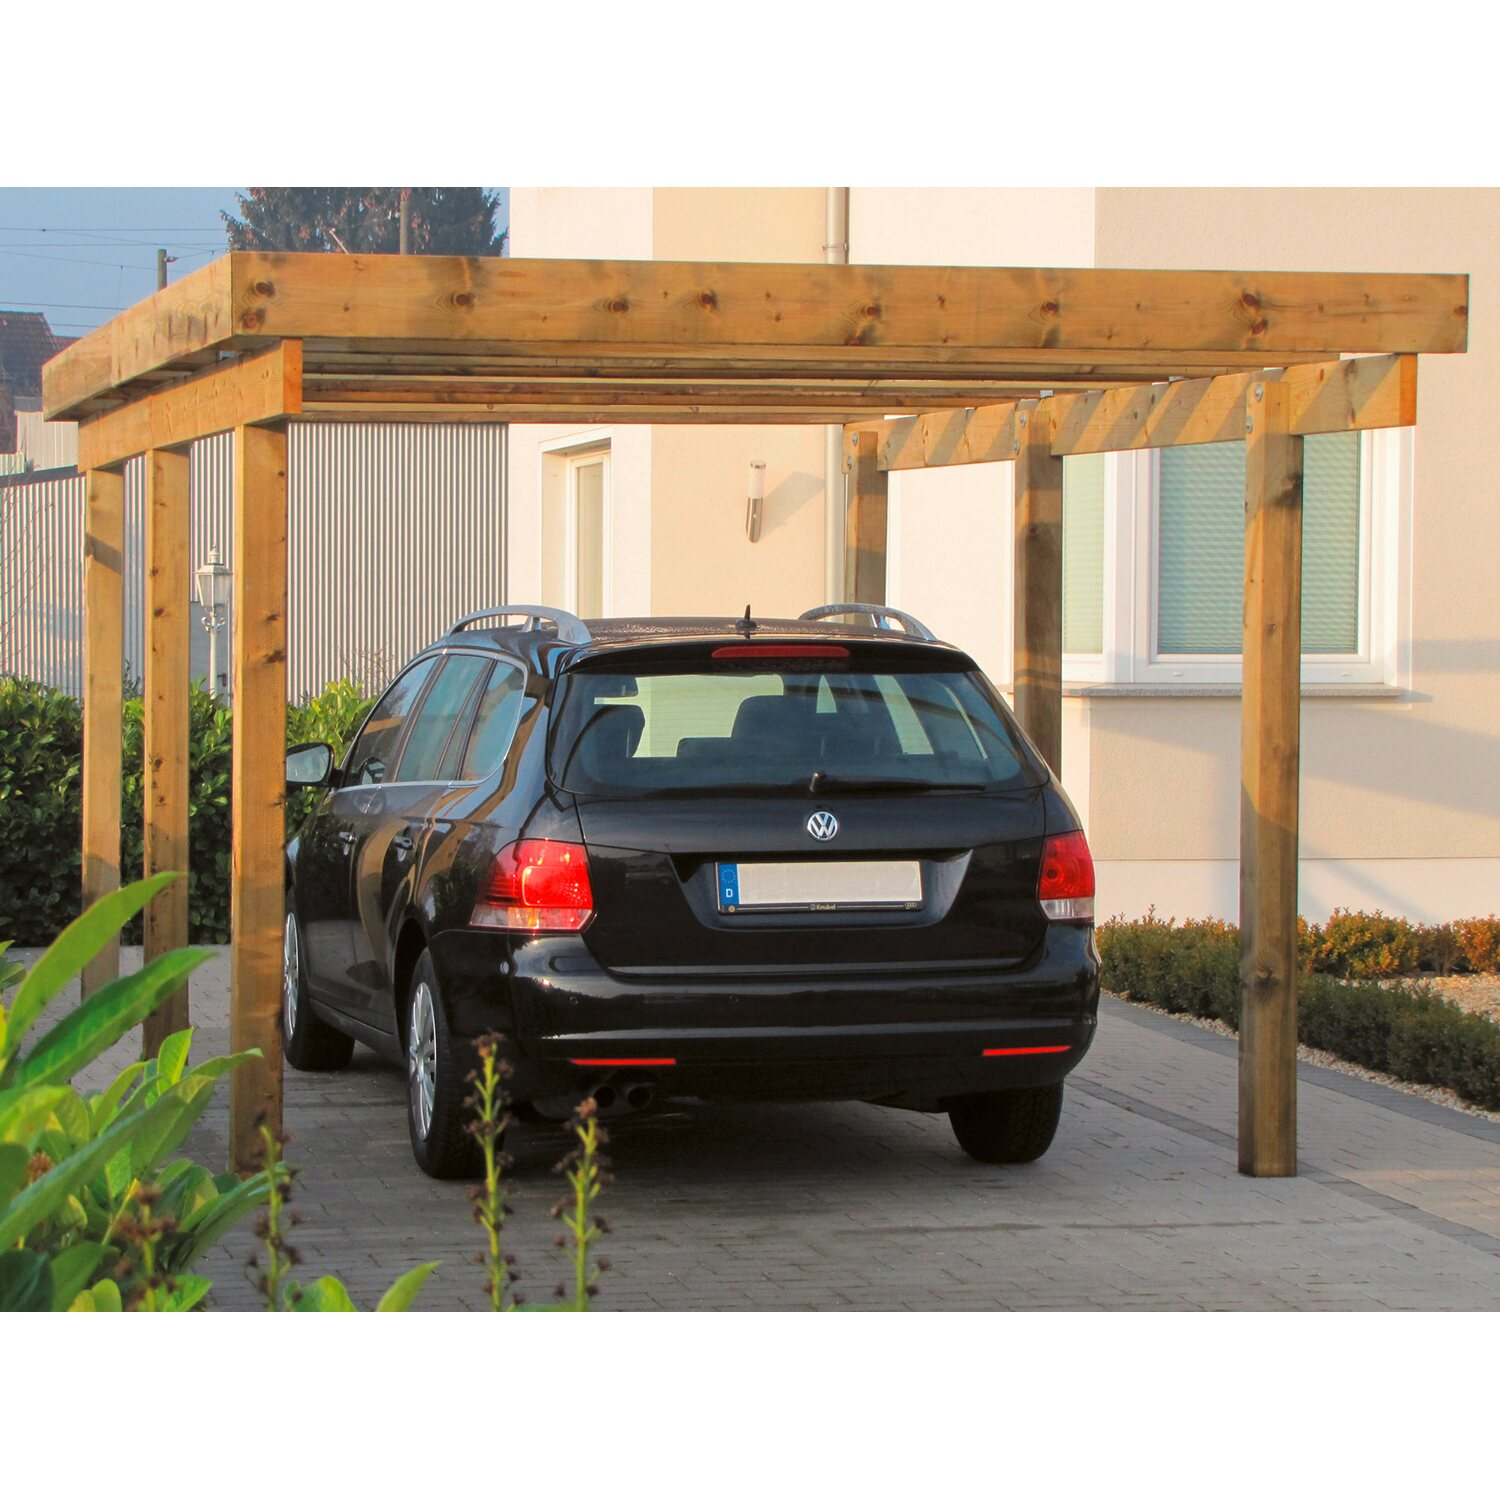 carport f r 2 autos carport fur 2 autos zeit f r gartenzeit f r garten carport f r 2 autos. Black Bedroom Furniture Sets. Home Design Ideas